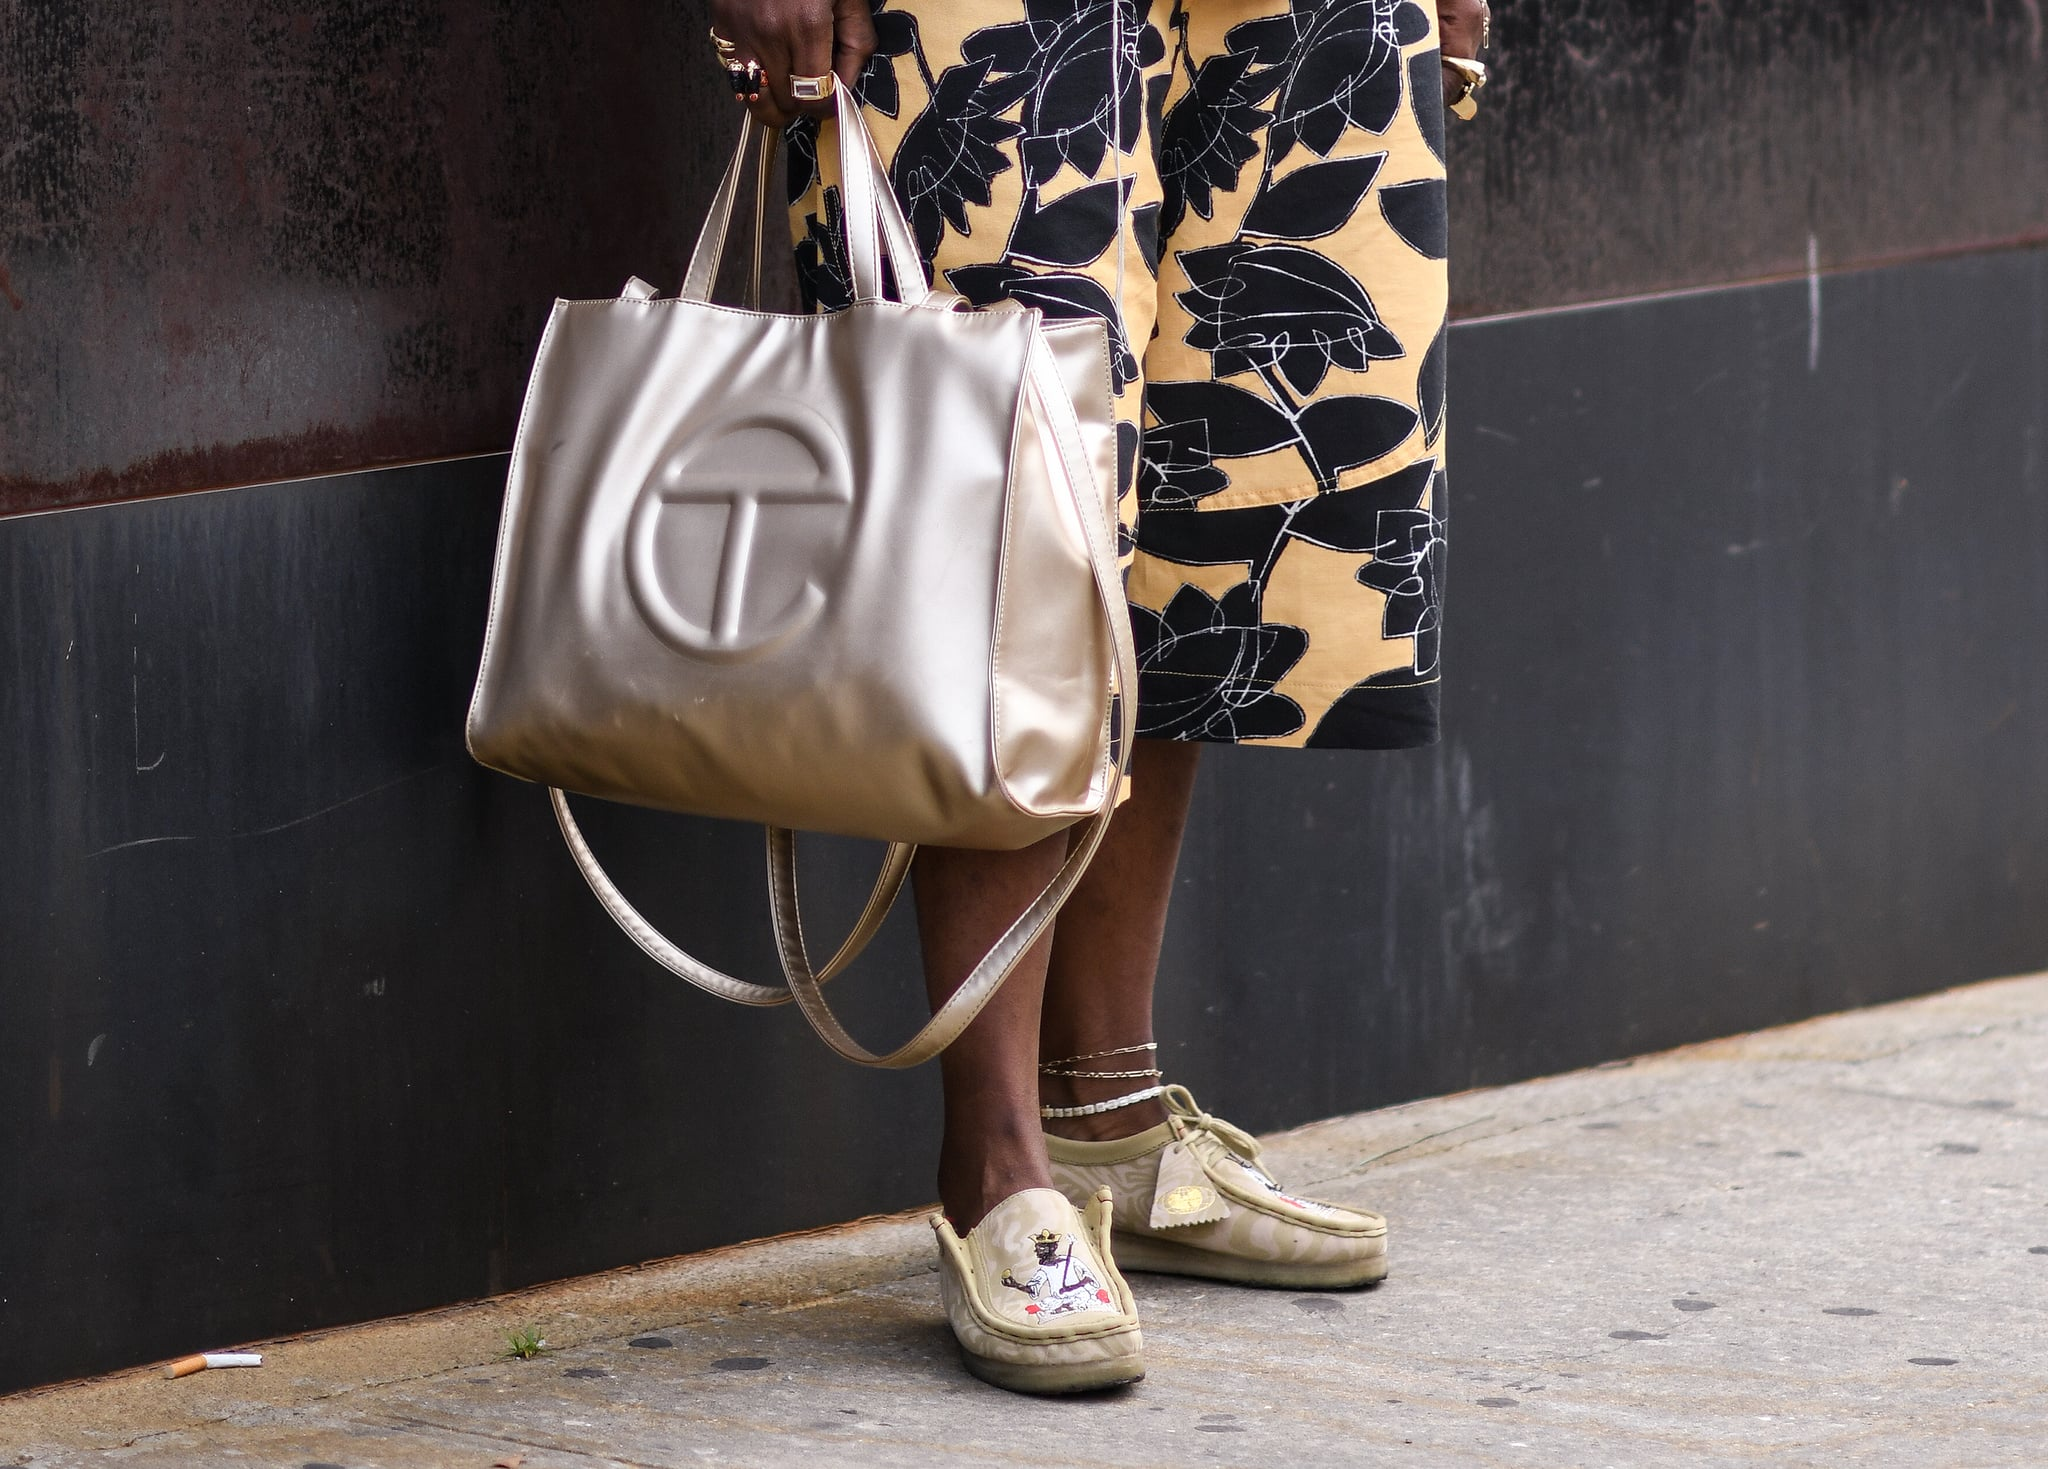 NEW YORK, NEW YORK - SEPTEMBER 16: A guest is seen wearing a Jacquemus shirt, Phillip Lim shorts and a Telfar bag outside the Studio 189 show during New York Fashion Week S/S21 on September 16, 2020 in New York City. (Photo by Daniel Zuchnik/Getty Images)